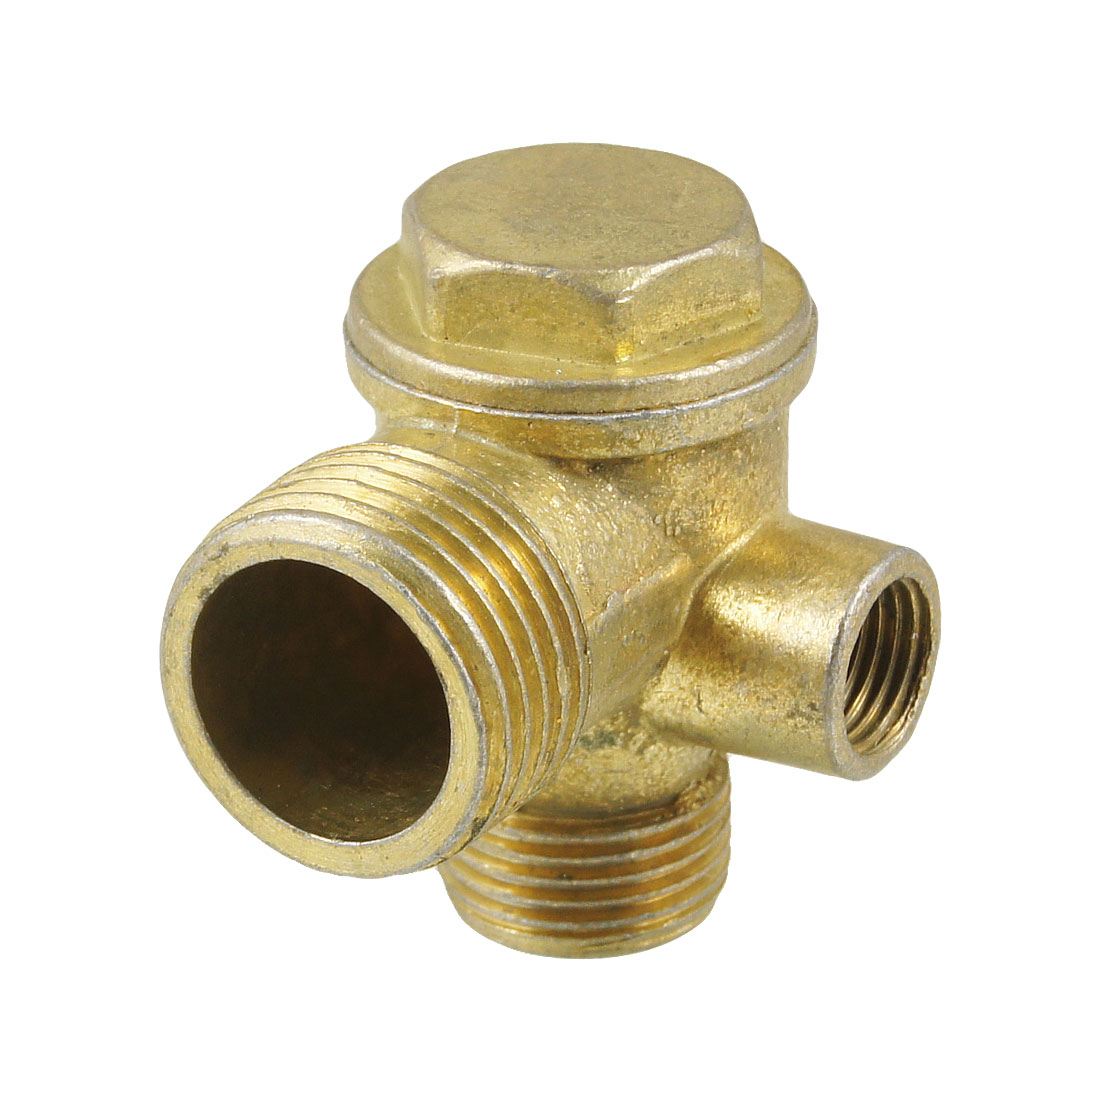 "Brass 1/2"" 3/8"" Male Thread 3 Way Water Air Pipe Connector Coupling"